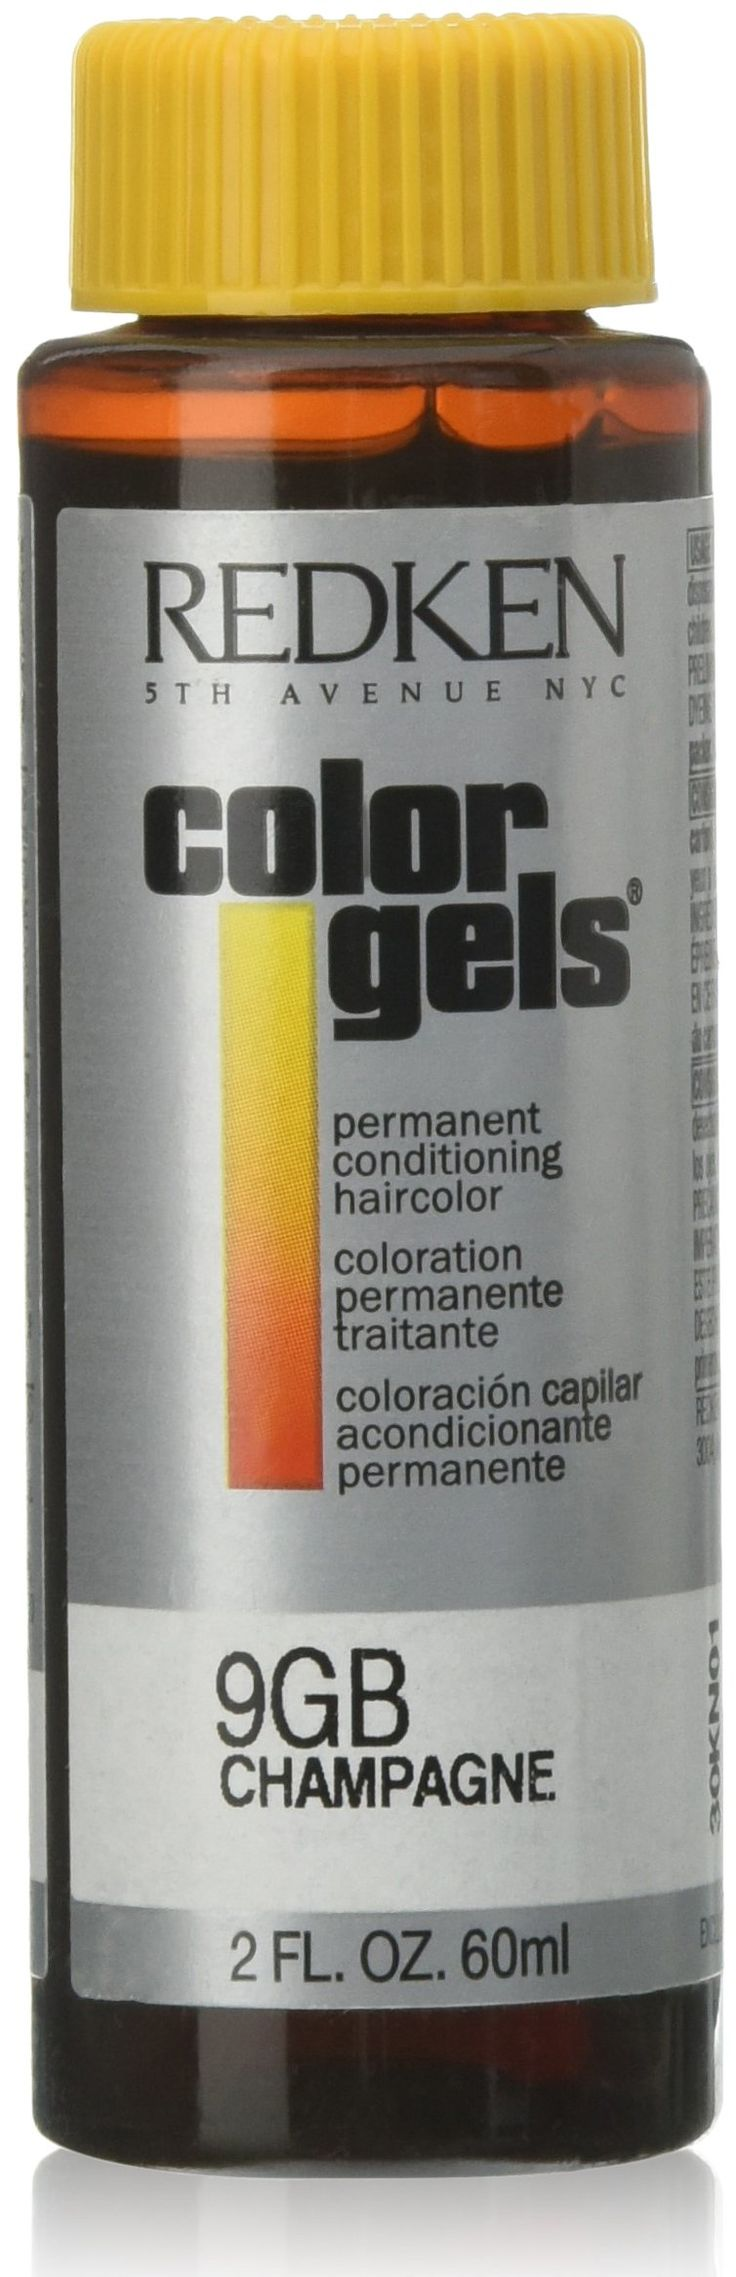 Redken Color Gels Permanent Conditioning 9GB Champagne Hair Color for Unisex, 2 Ounce. Use it to brighten, darken, change or correct, or for highlighting and creative color effects. Color gels provides exceptional gray coverage. Results are long lasting and hair is left in superior condition.